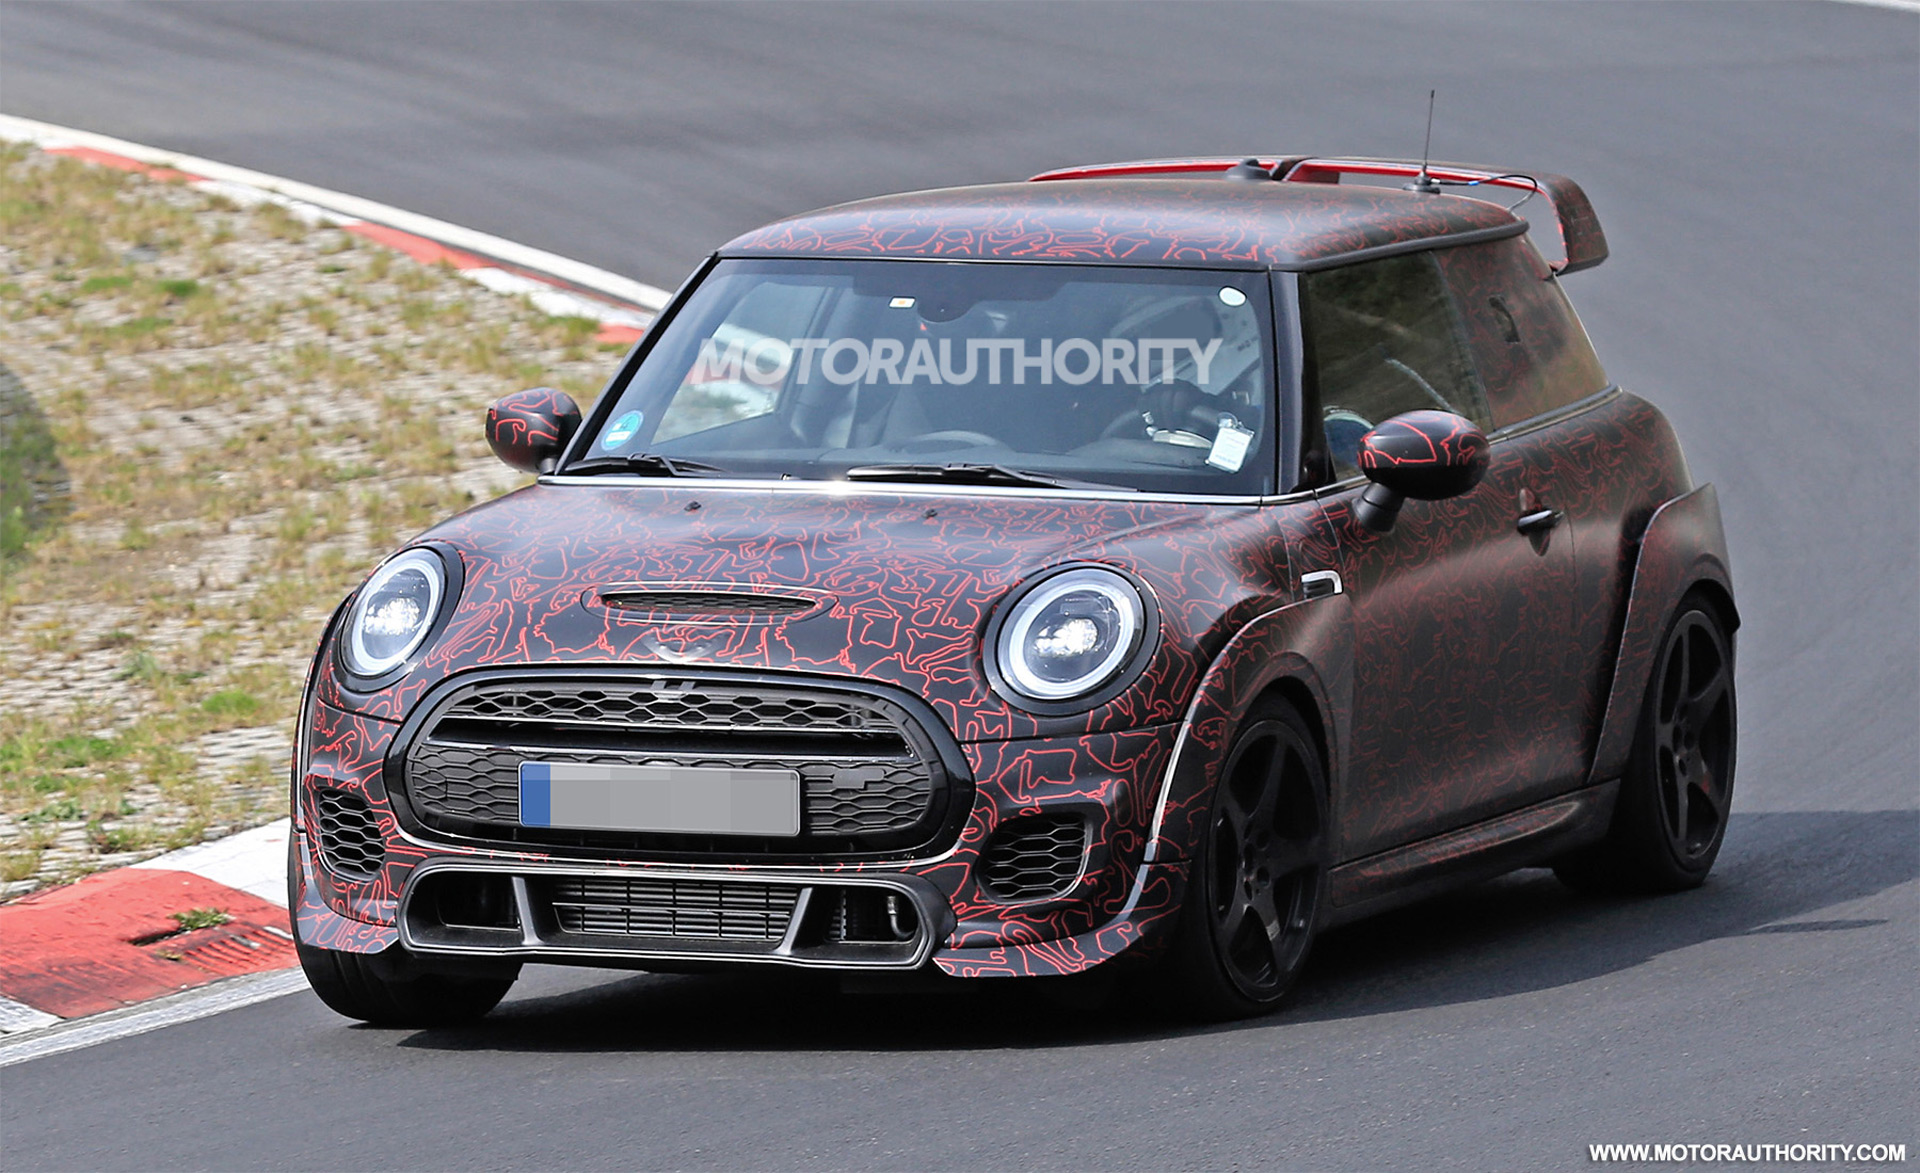 2021 Mini John Cooper Works Gp Spy Shots And Video